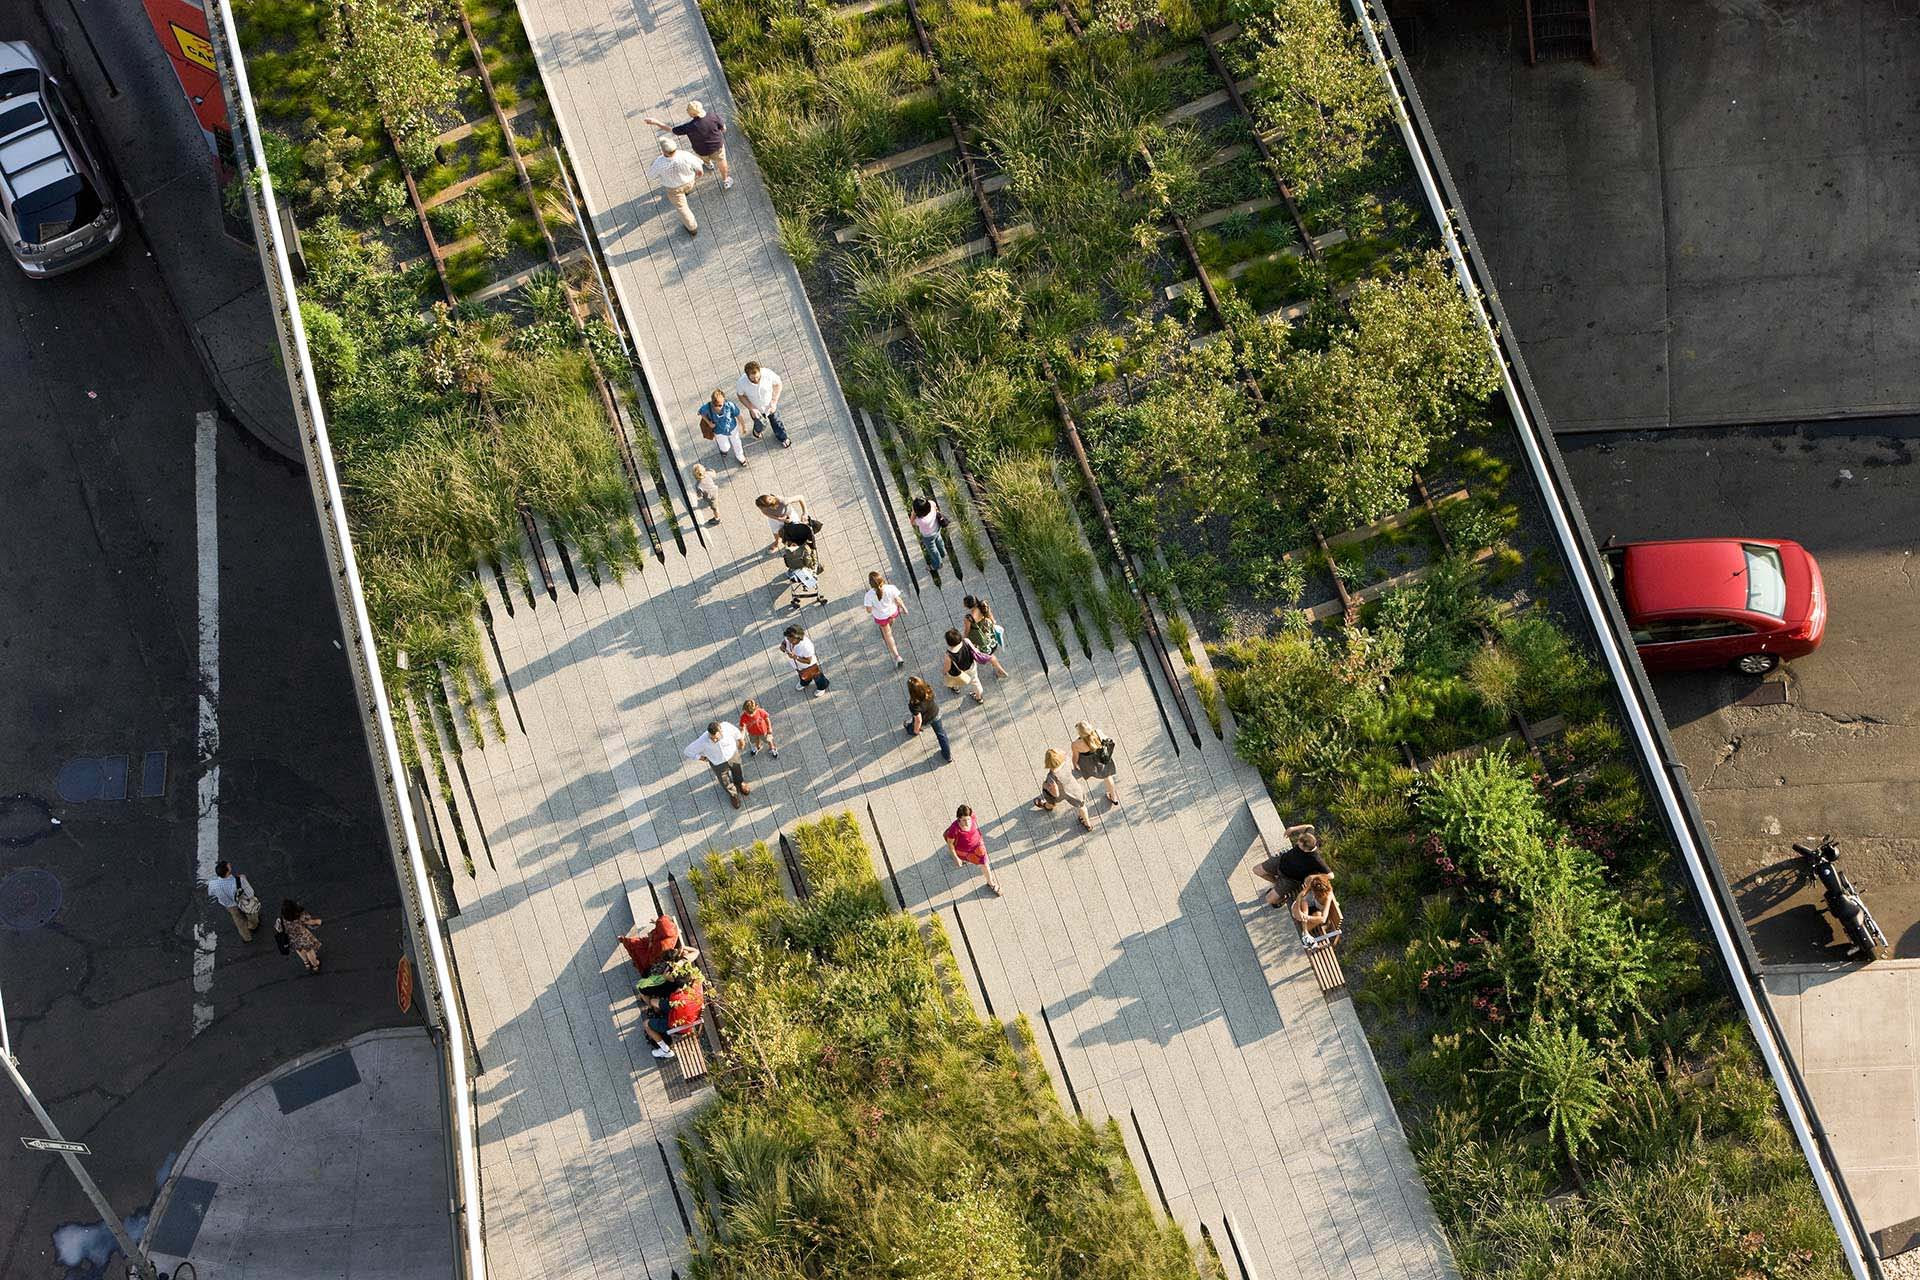 Birds' eye view of the high line